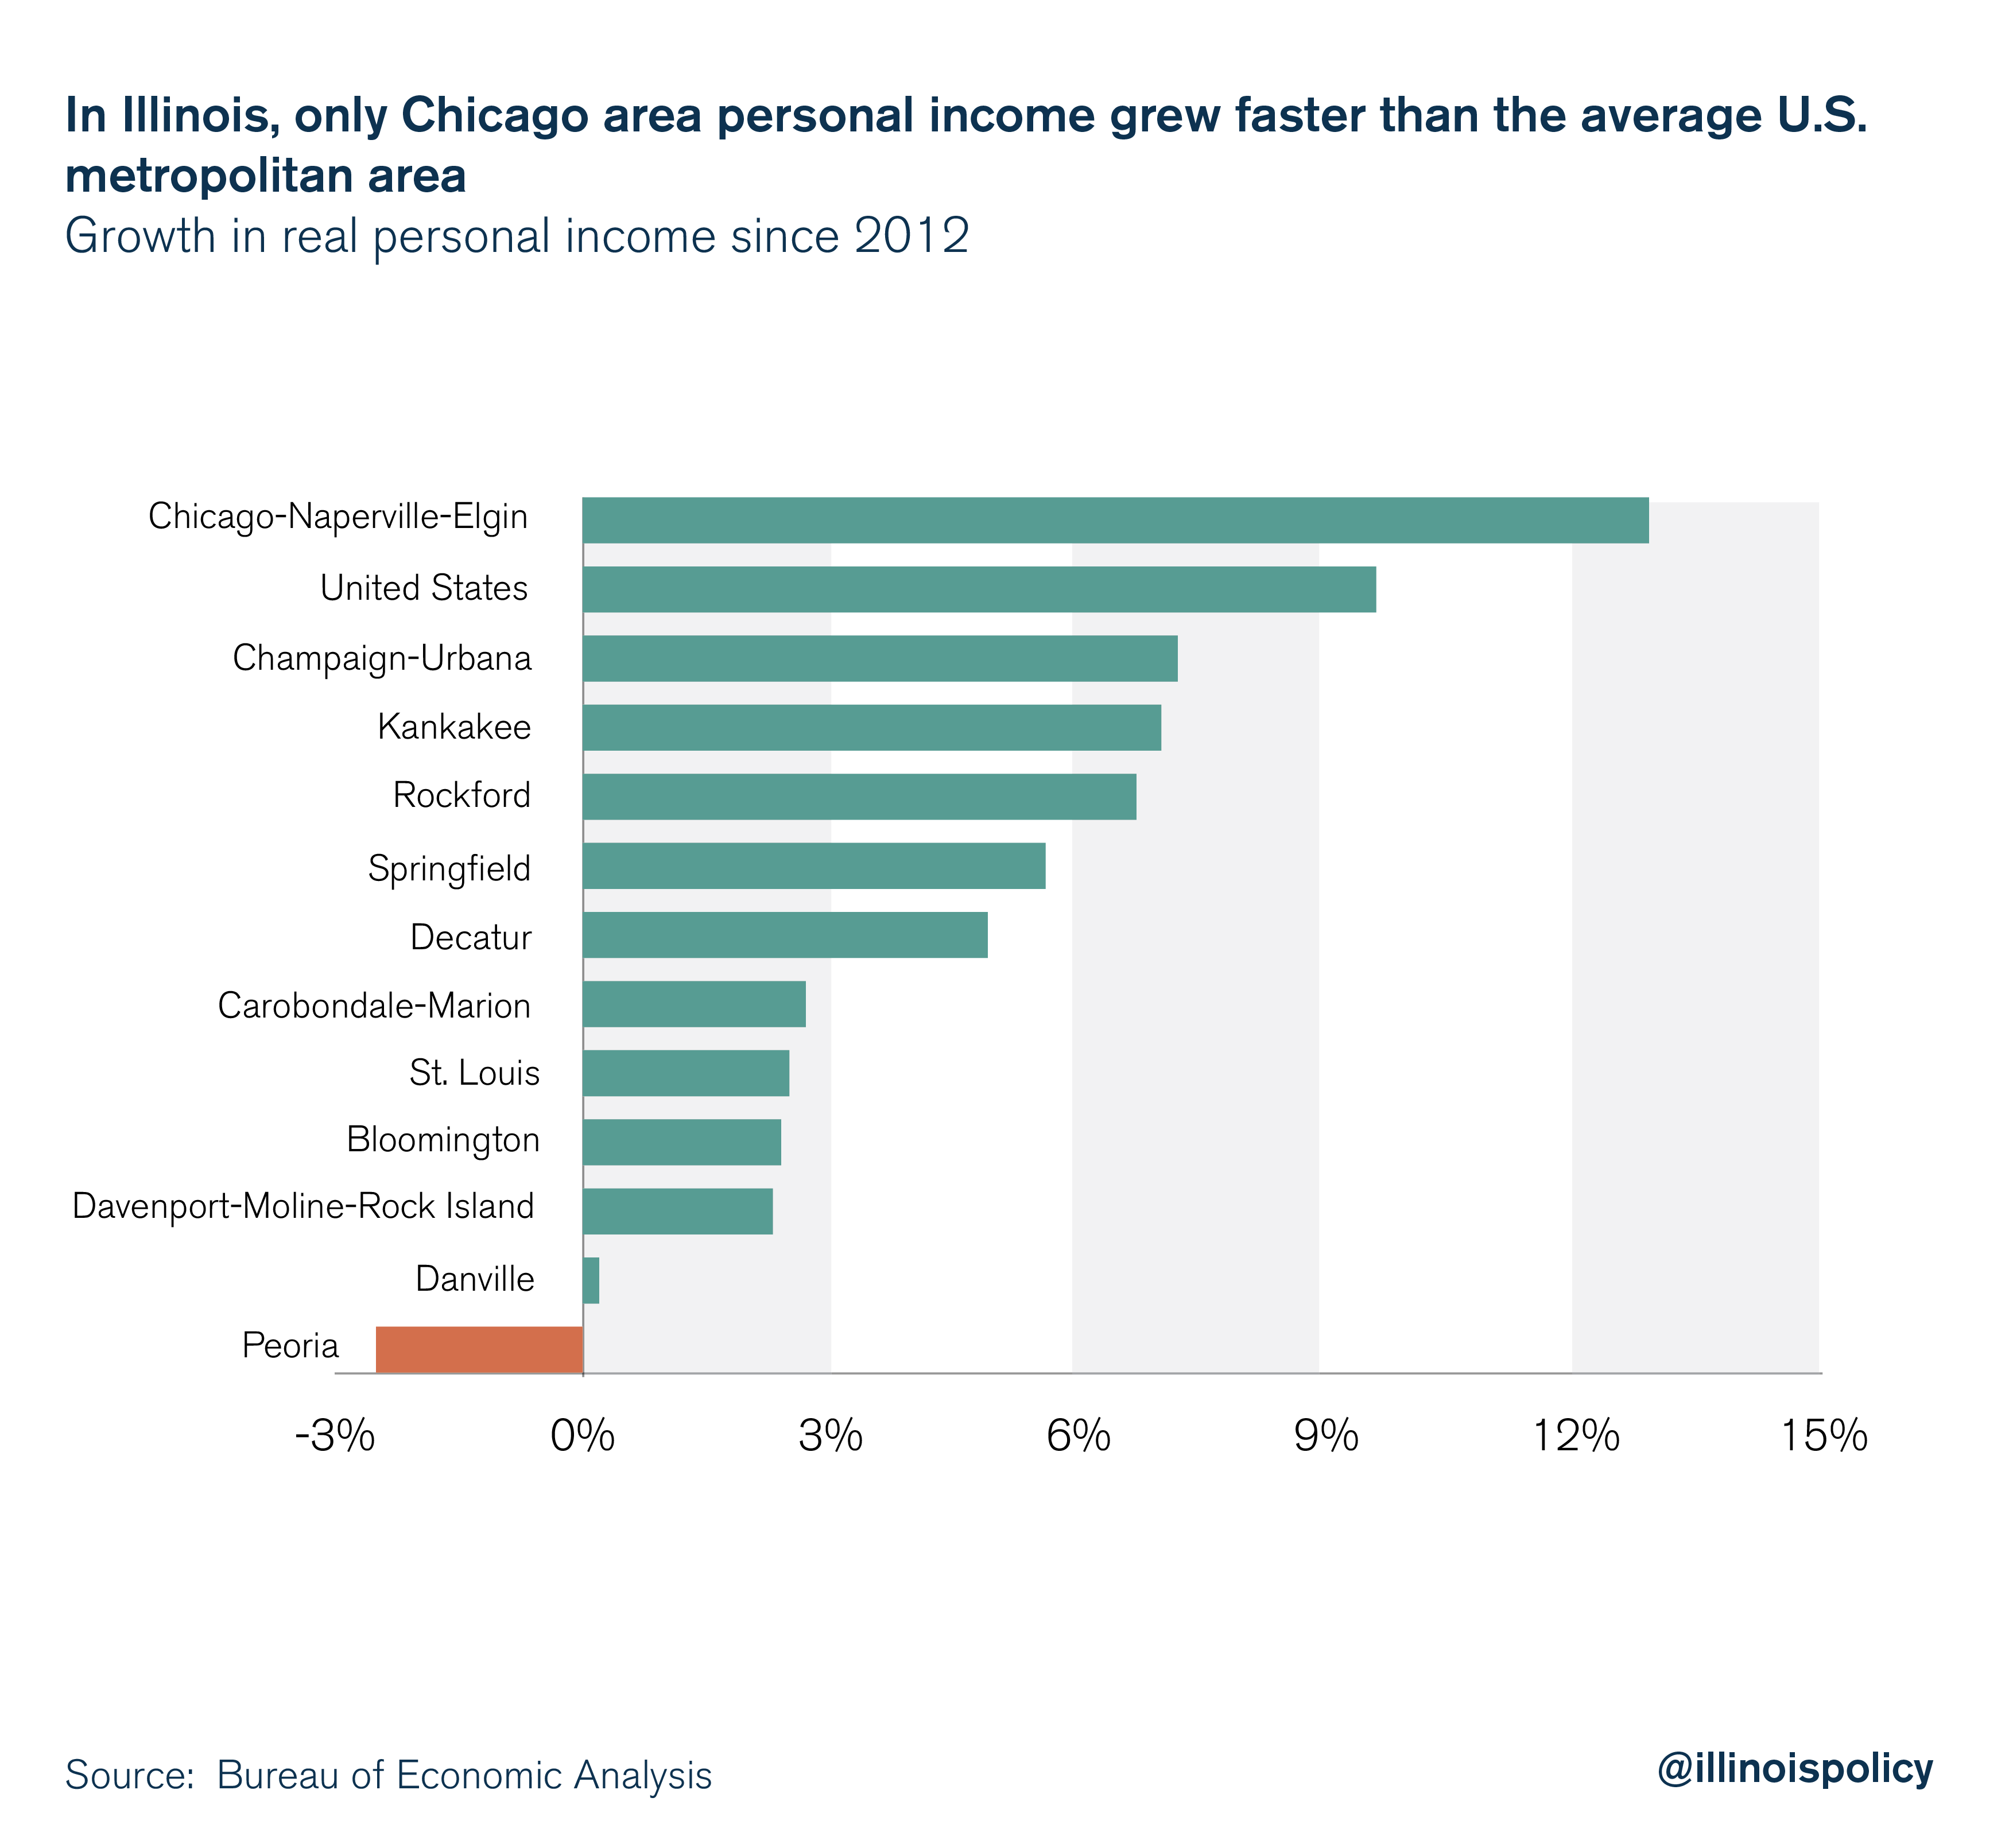 In Illinois, only Chicago area personal income grew faster than the average U.S. metropolitan area